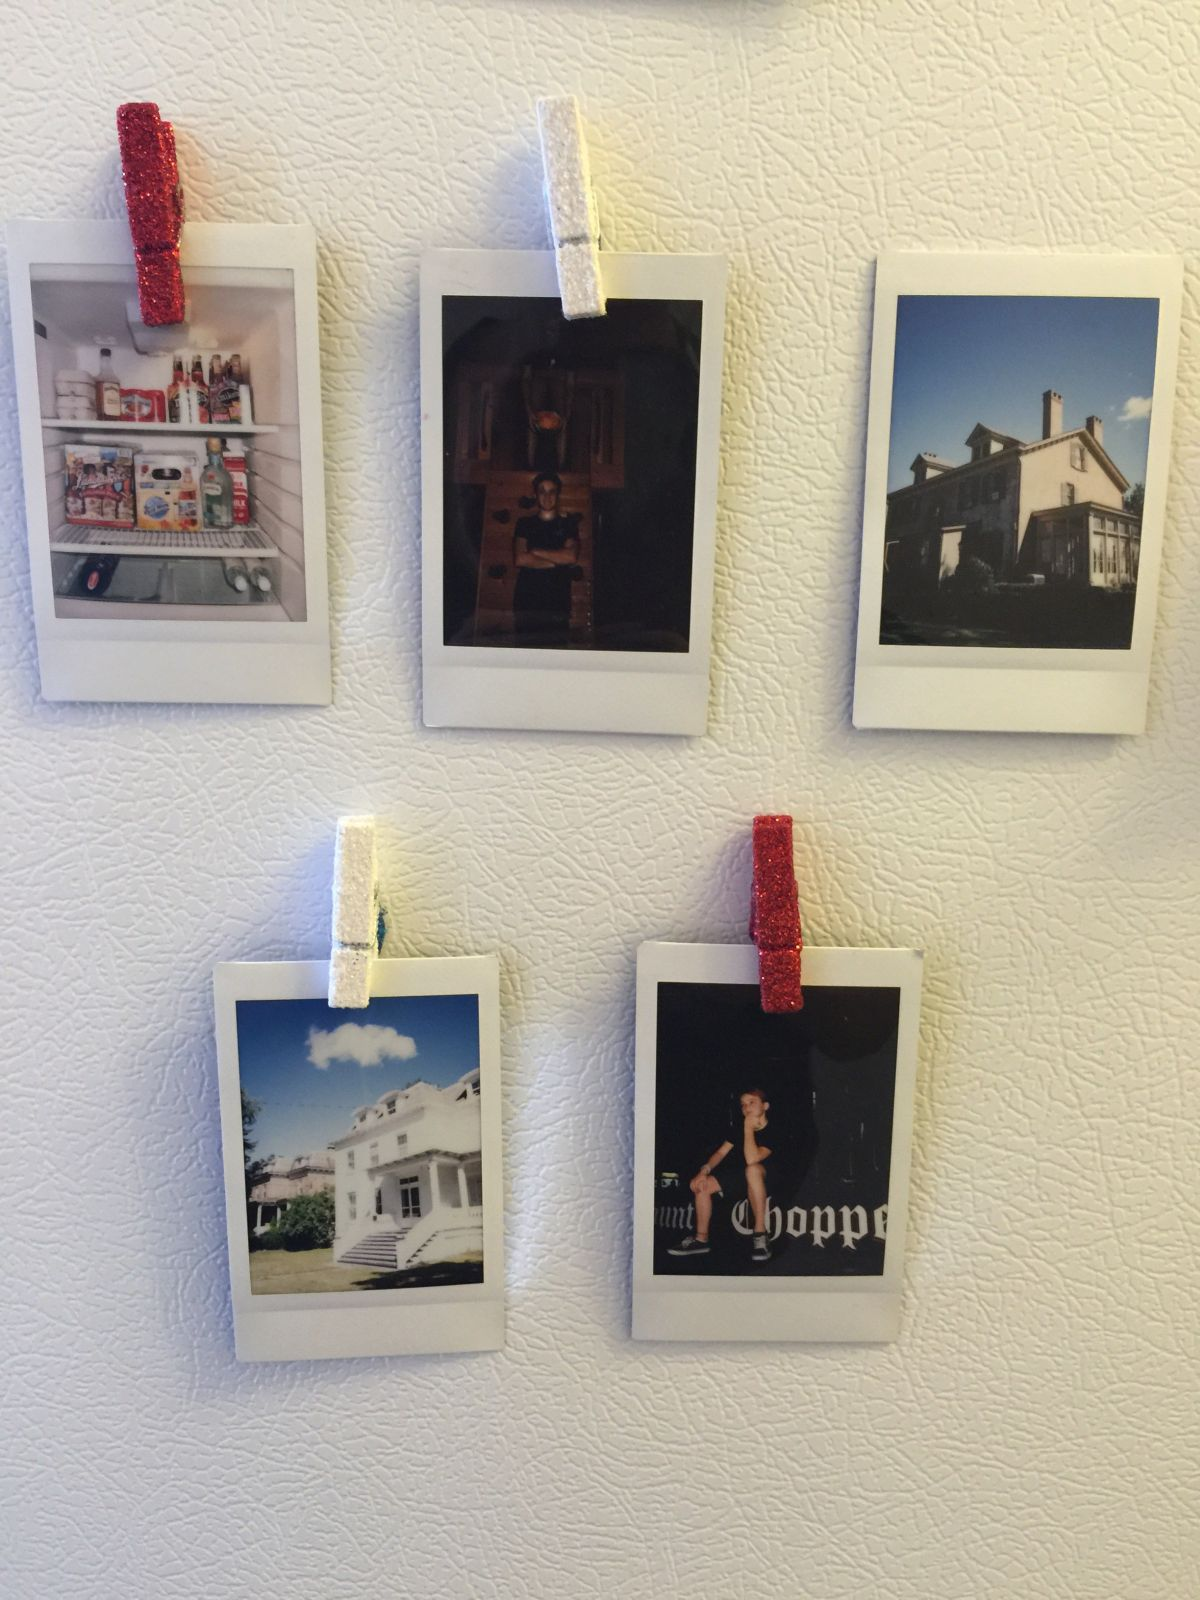 Display polaroid photographs on wall